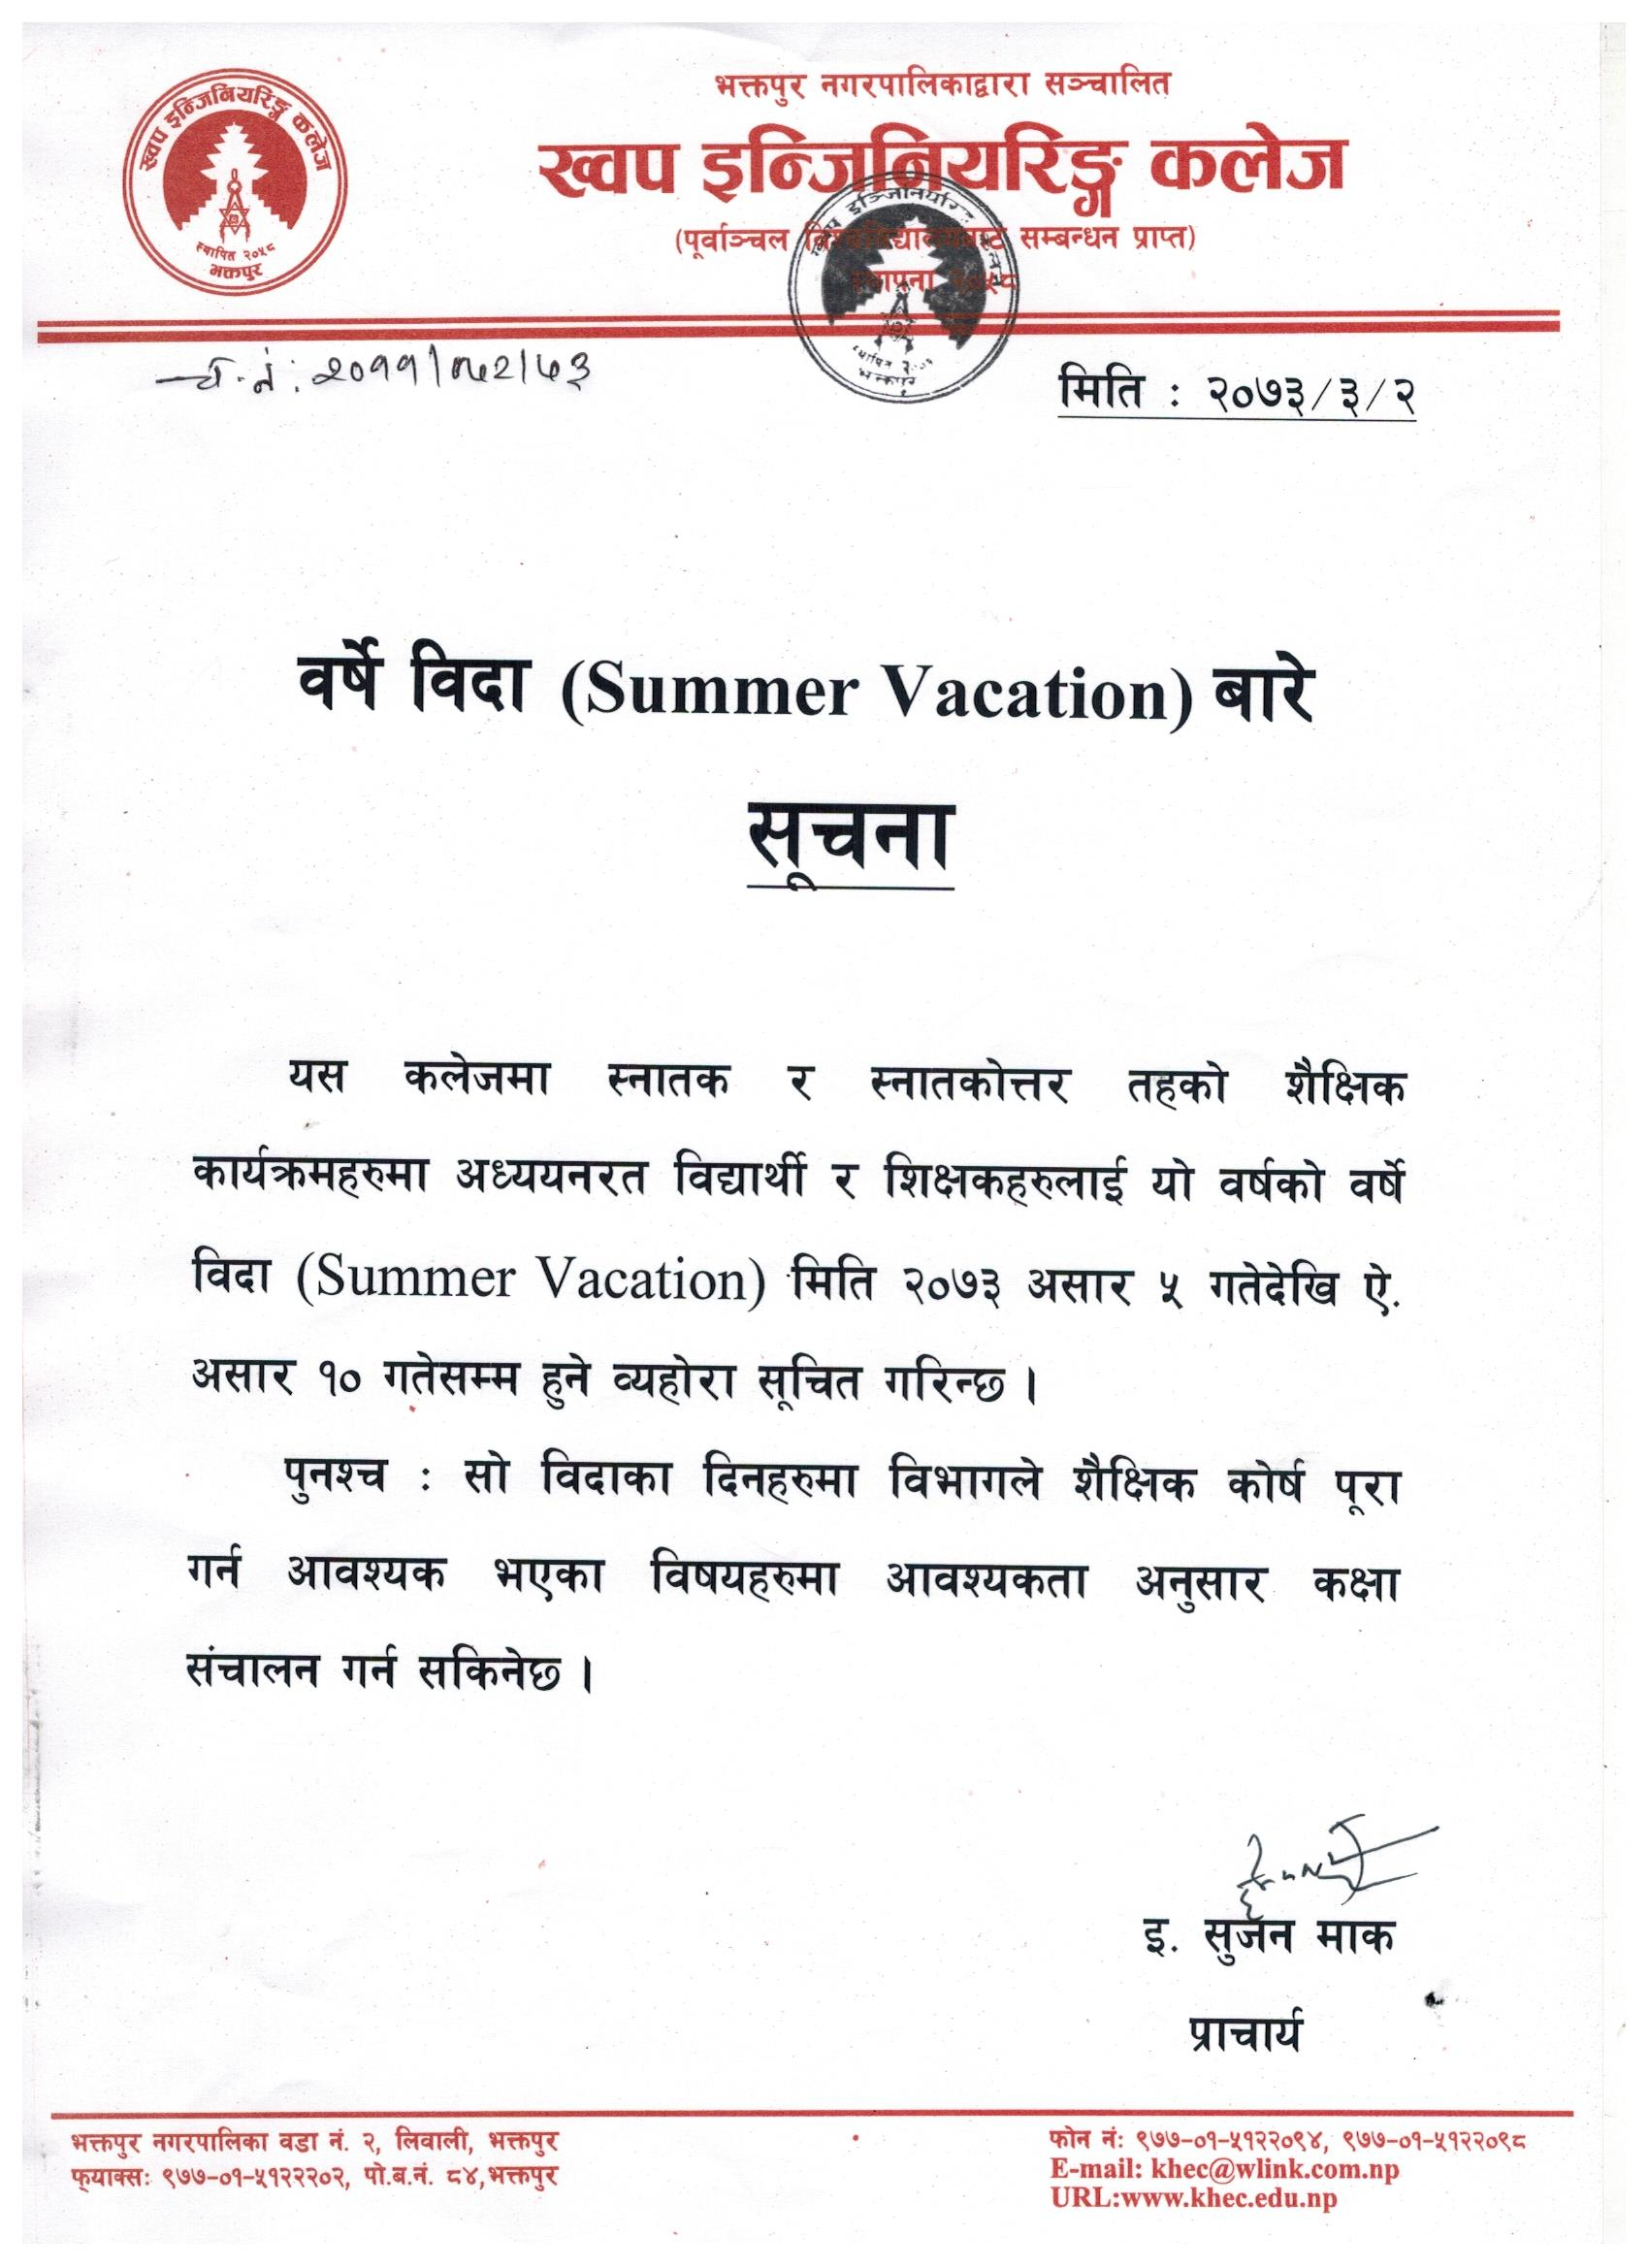 Notice for summer vacation